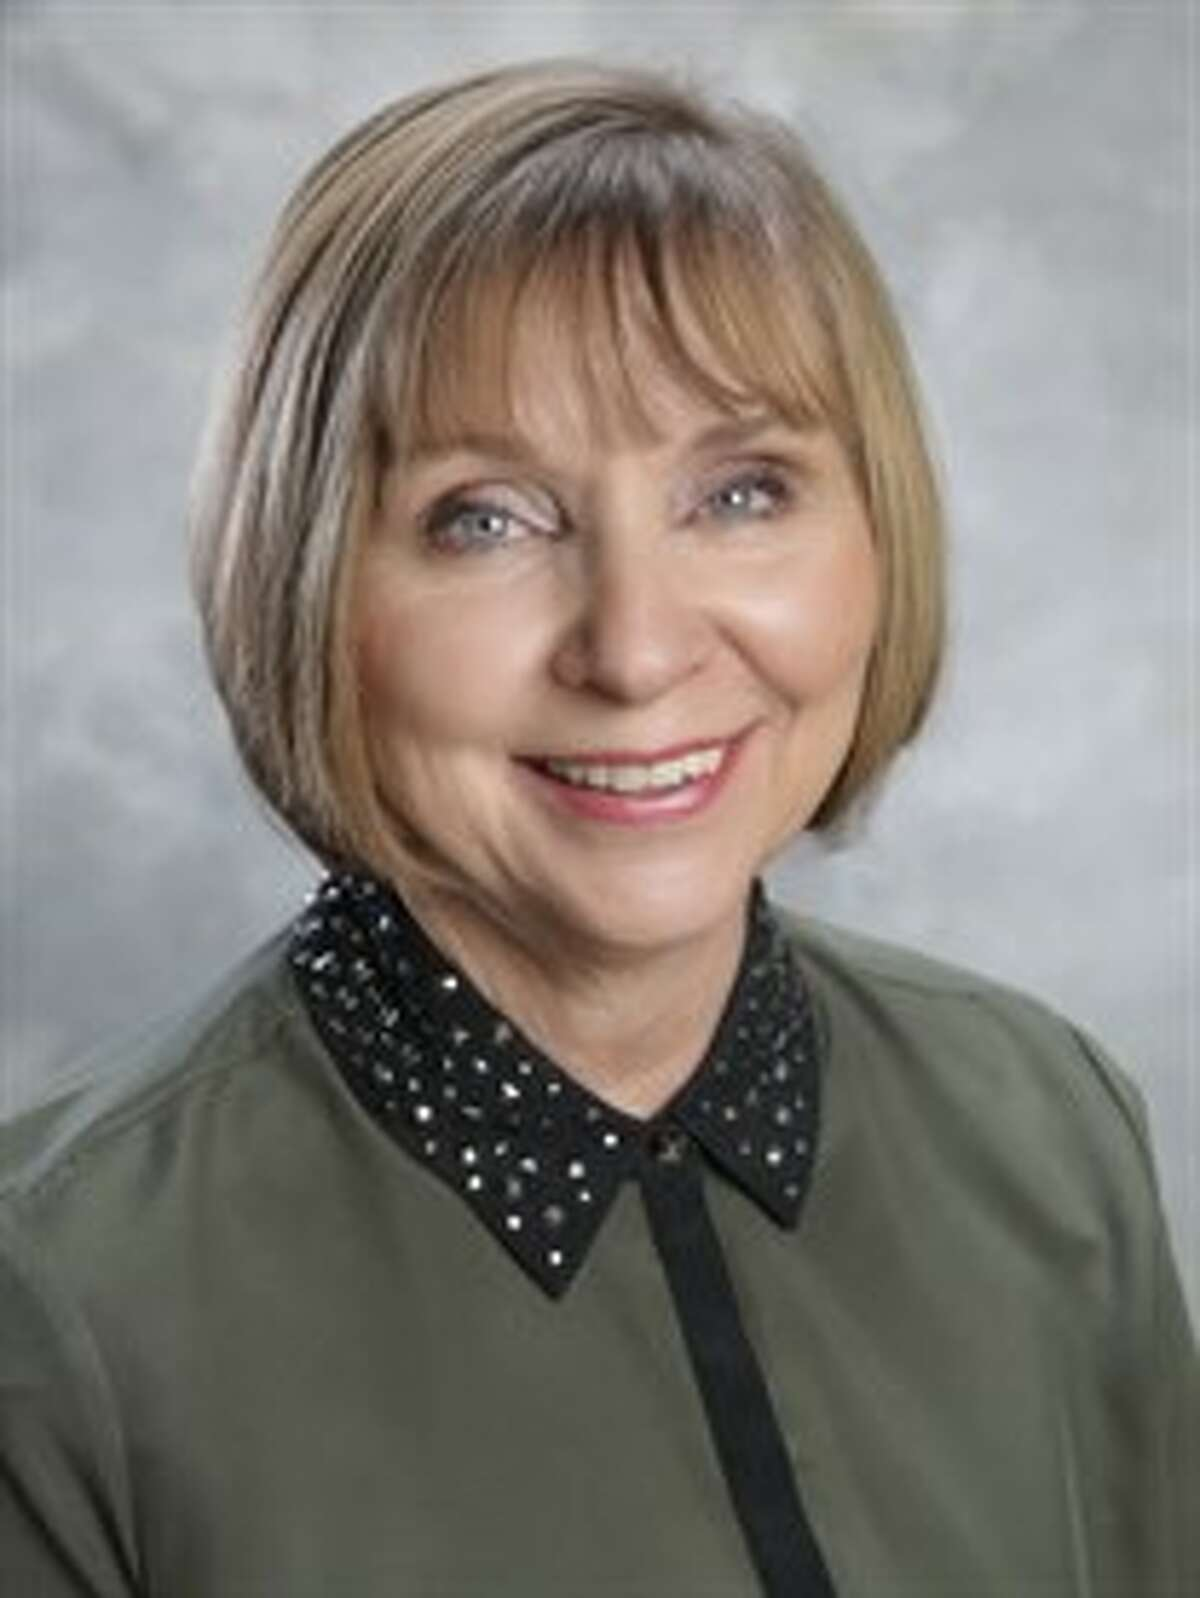 Lorraine Ficken, 68, was identified as one of the three people killed at her Sammamish home, along with her husband, 72-year-old historian Robert Ficken, and their son, 34-year-old Matthew Ficken. Authorities believe the incident was a murder-suicide. The King County Medical Examiner confirmed that Matthew Ficken turned a gun on himself.